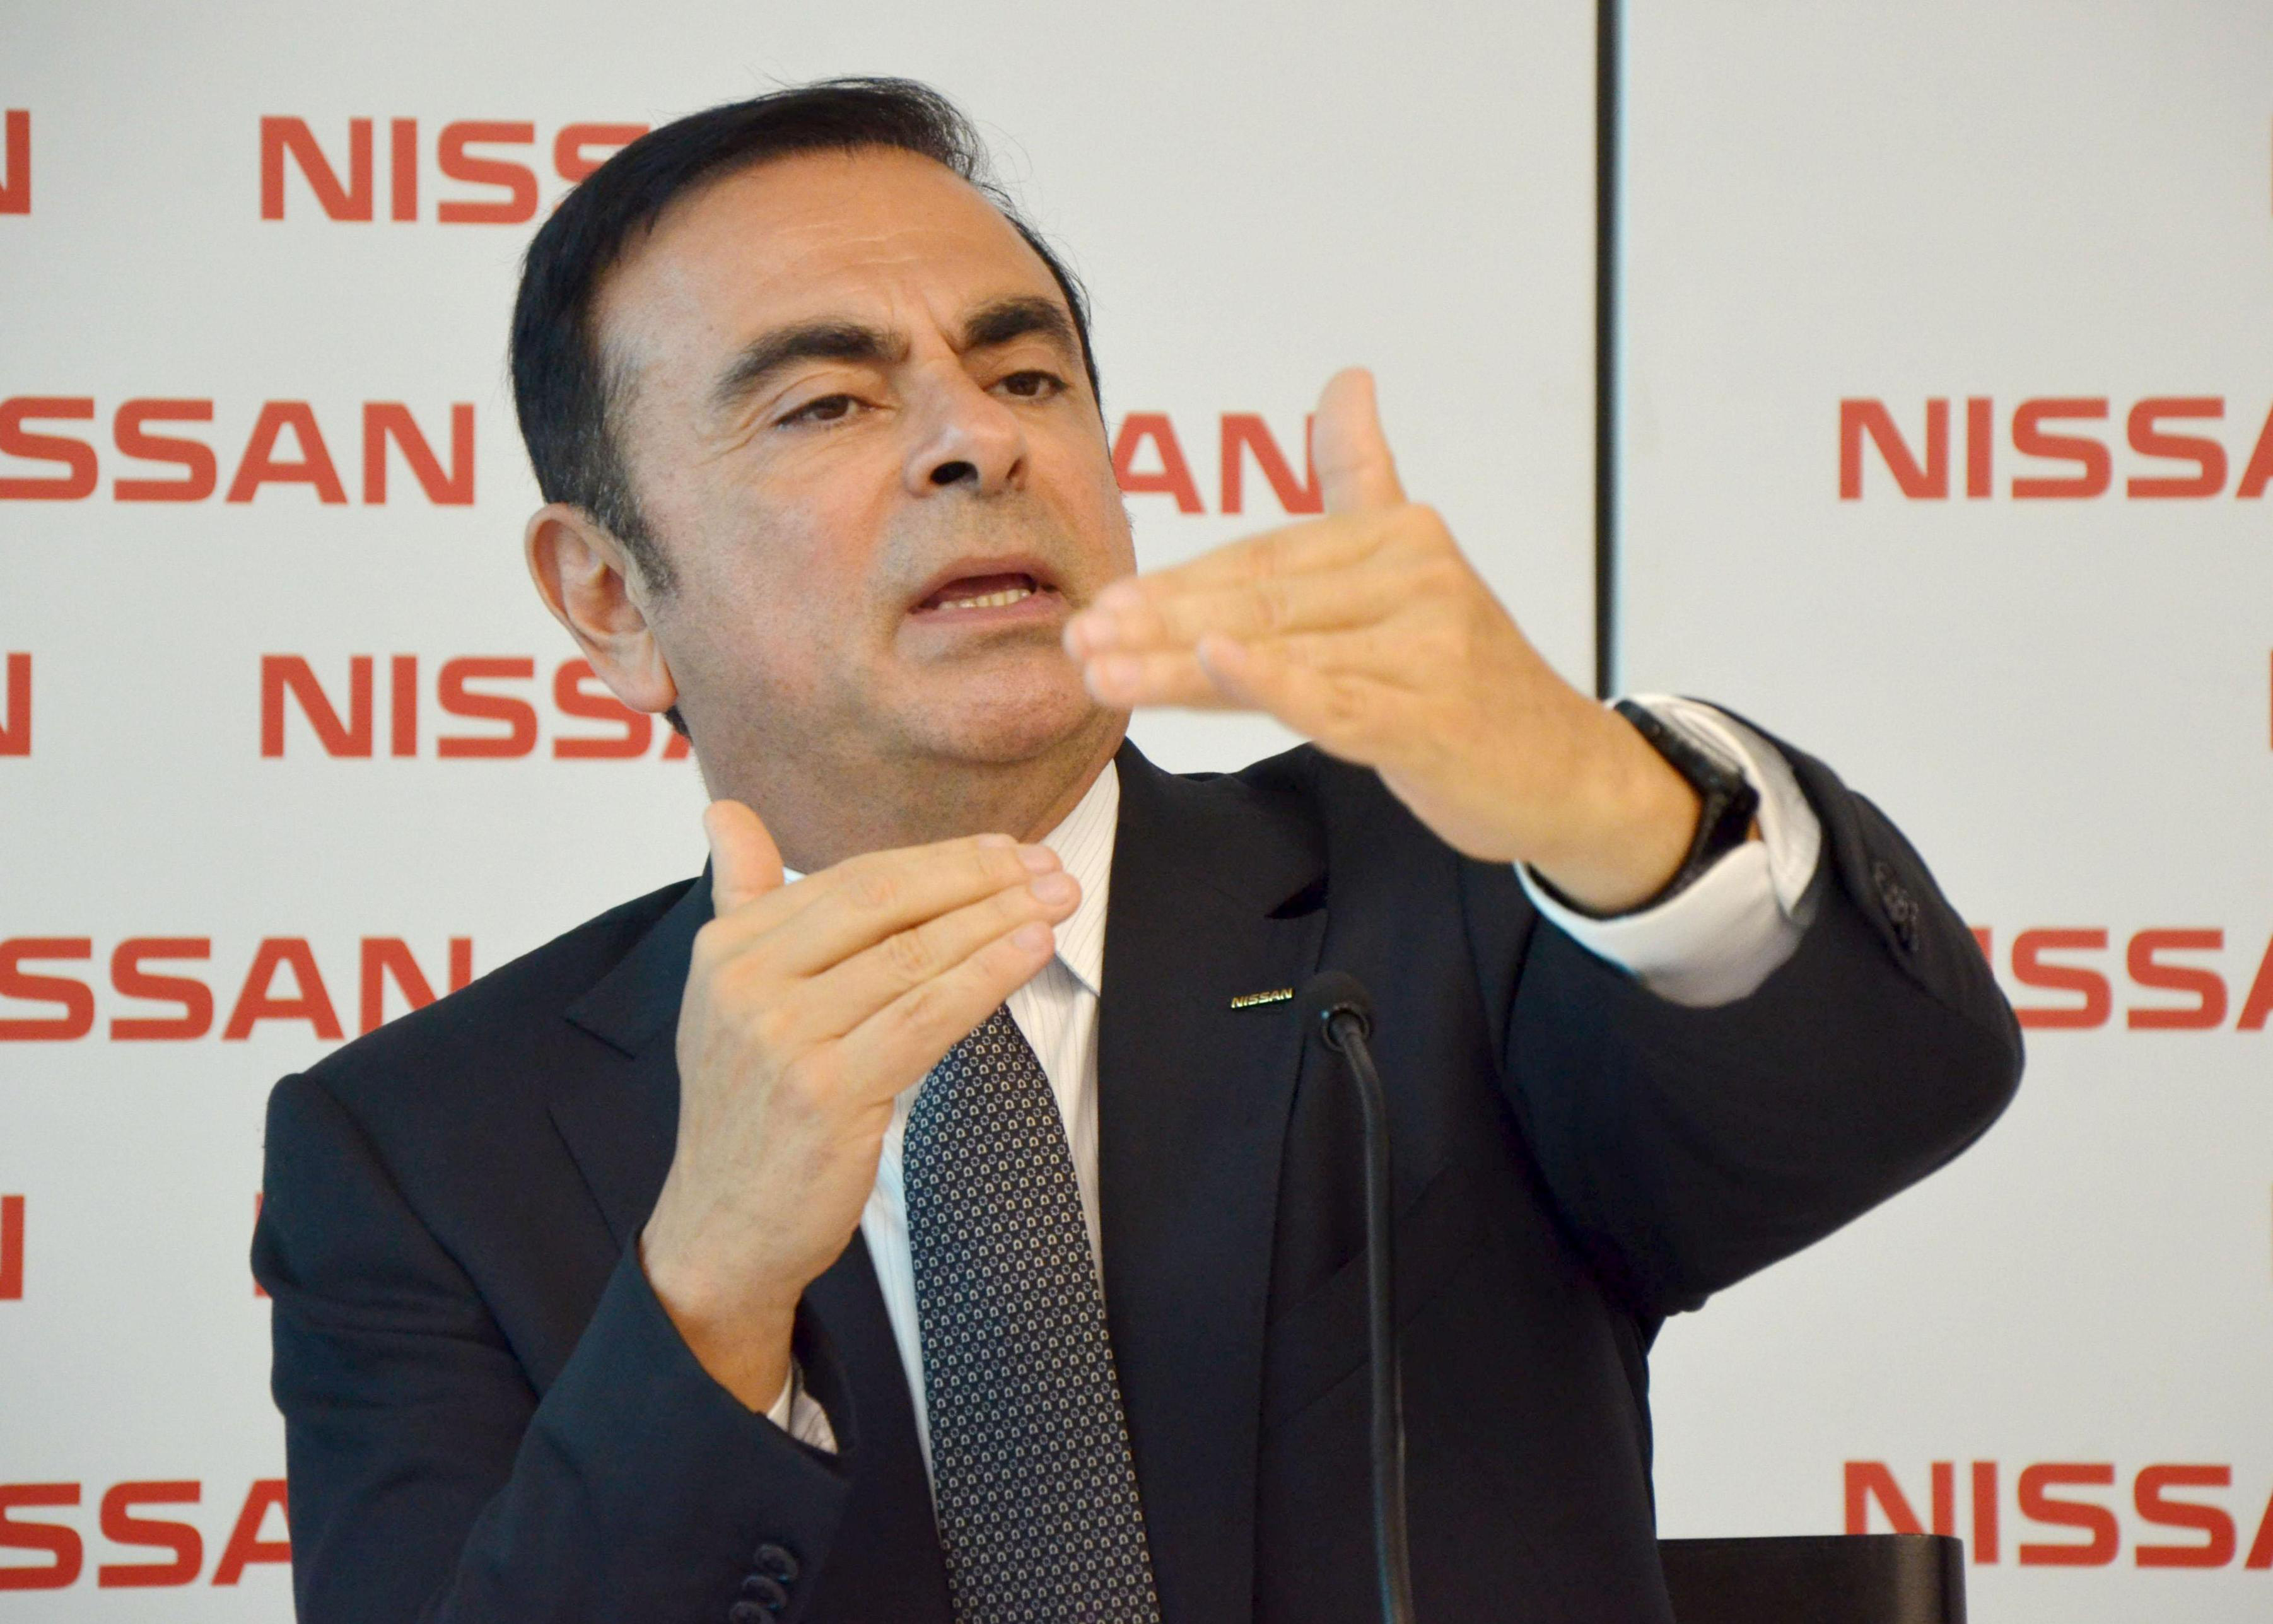 Nissan Motor Co. Chief Executive Officer Carlos Ghosn gestures during a news conference in Rio de Janeiro on Tuesday.   KYODO